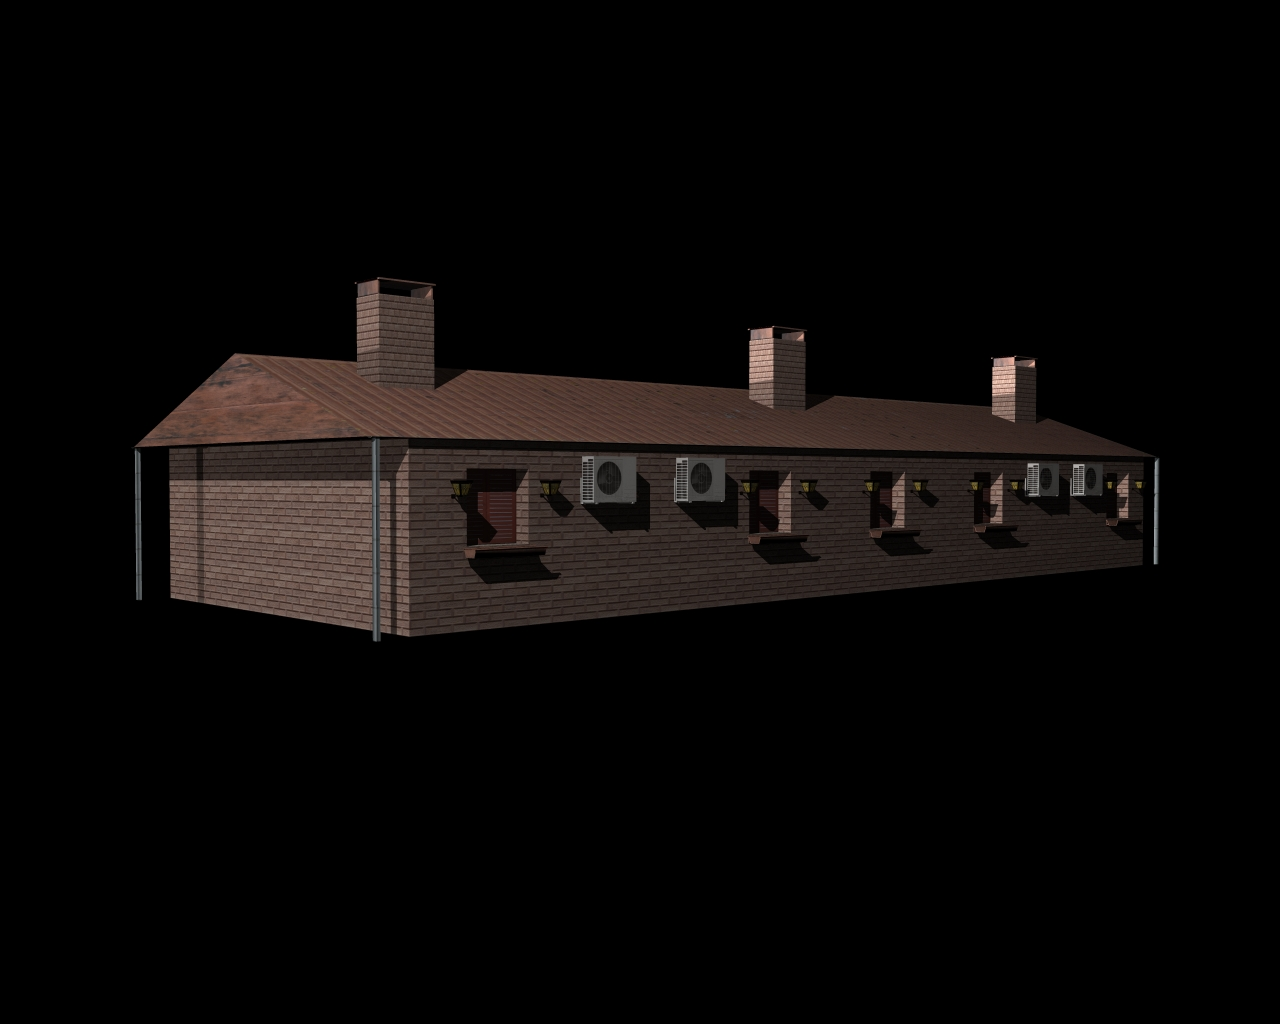 fully textured house ranch style 101 3d model 3ds 164431